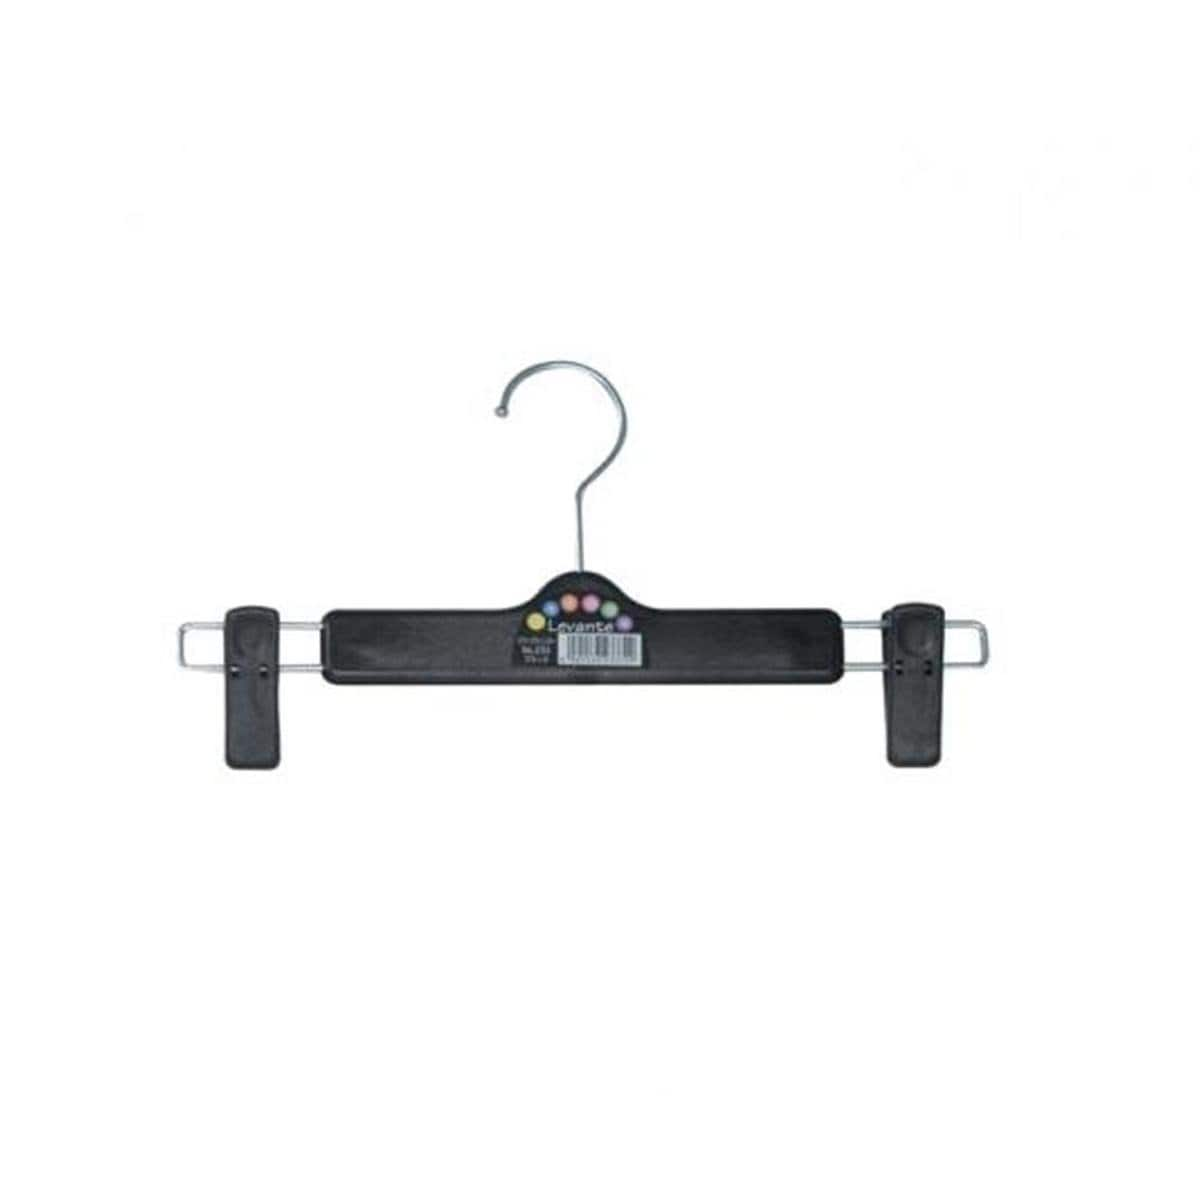 Japanese Levante Slacks Cloth Hanger With Clips Black